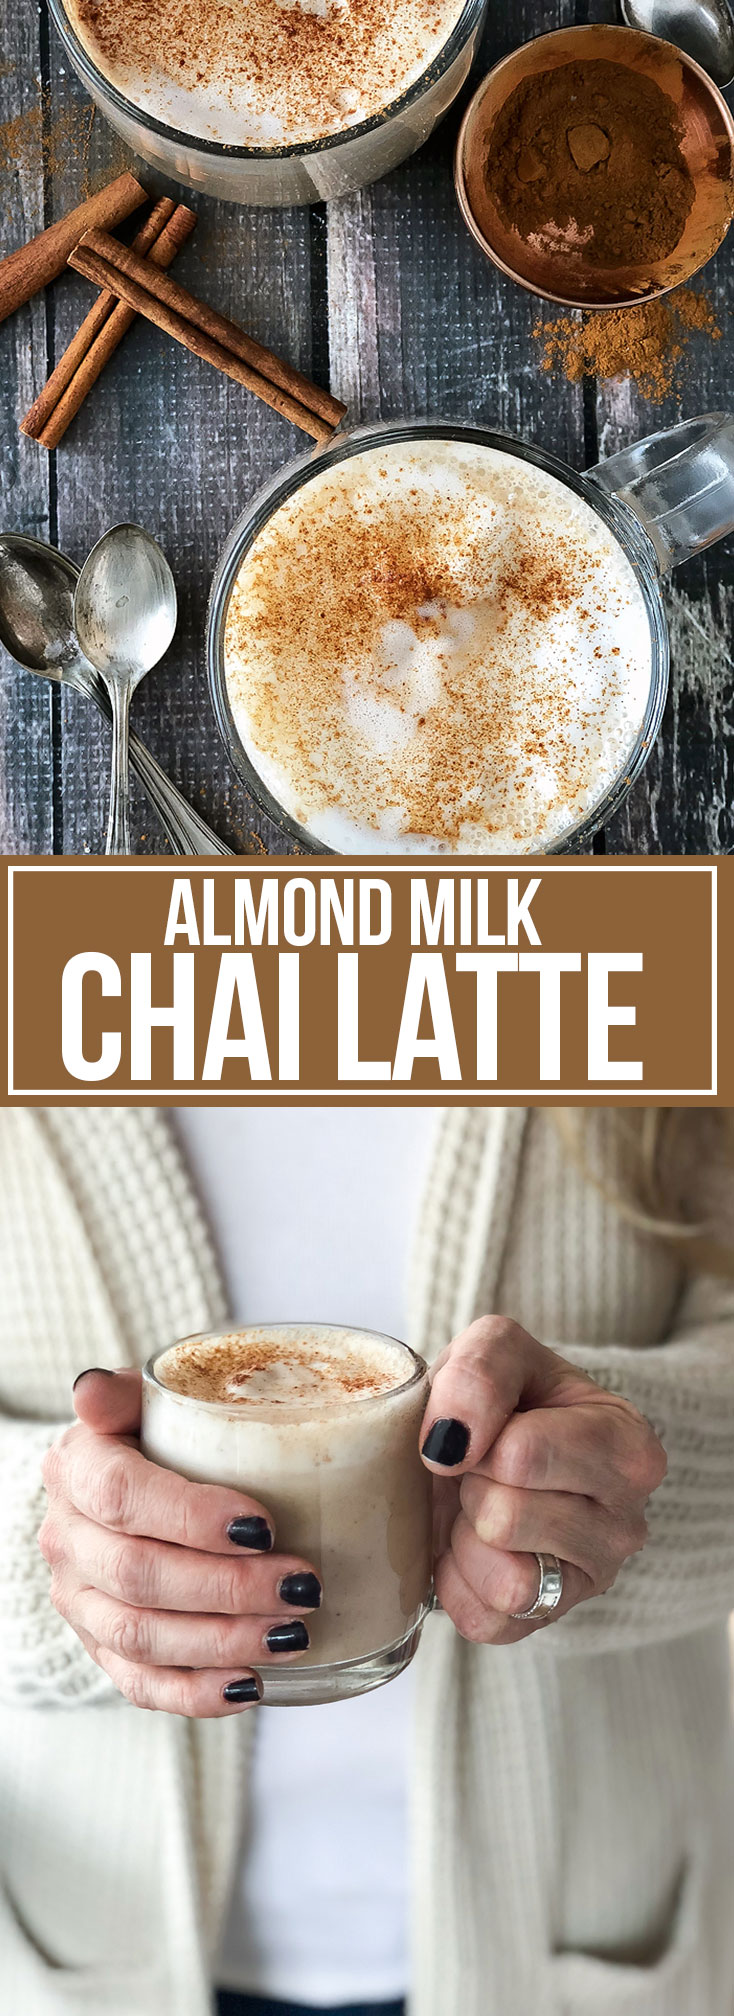 ALMOND MILK CHAI LATTE